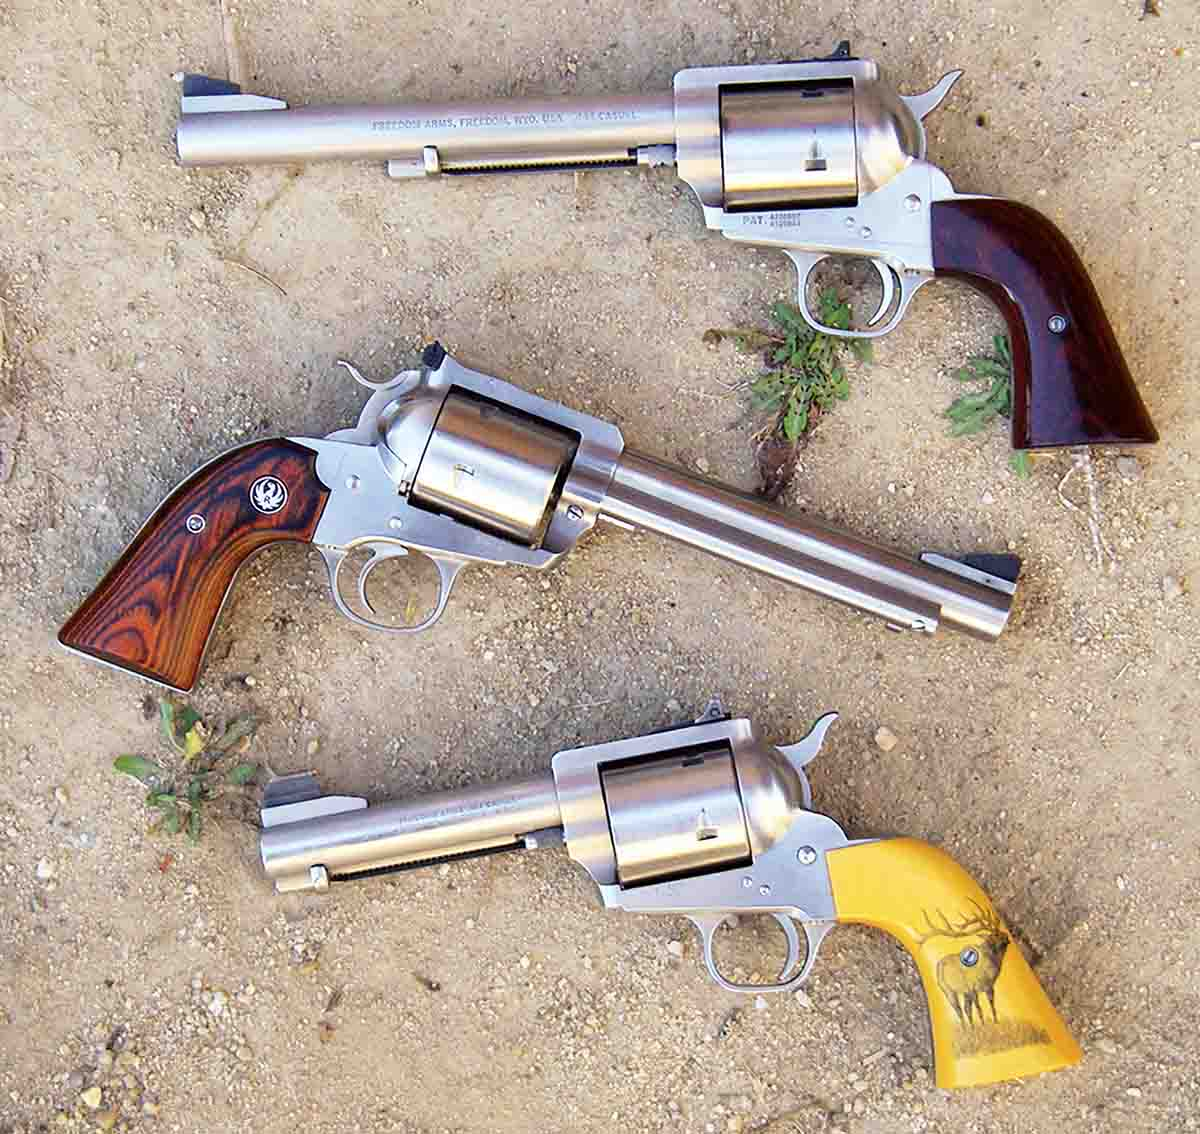 Typical revolvers chambered for the .454 Casull include (top to bottom) a Freedom Arms Model 83 with a 7½-inch barrel, a Ruger New Model Super Blackhawk Bisley with a 6½-inch barrel and a custom Freedom Arms Model 83 with a 4¾-inch barrel.